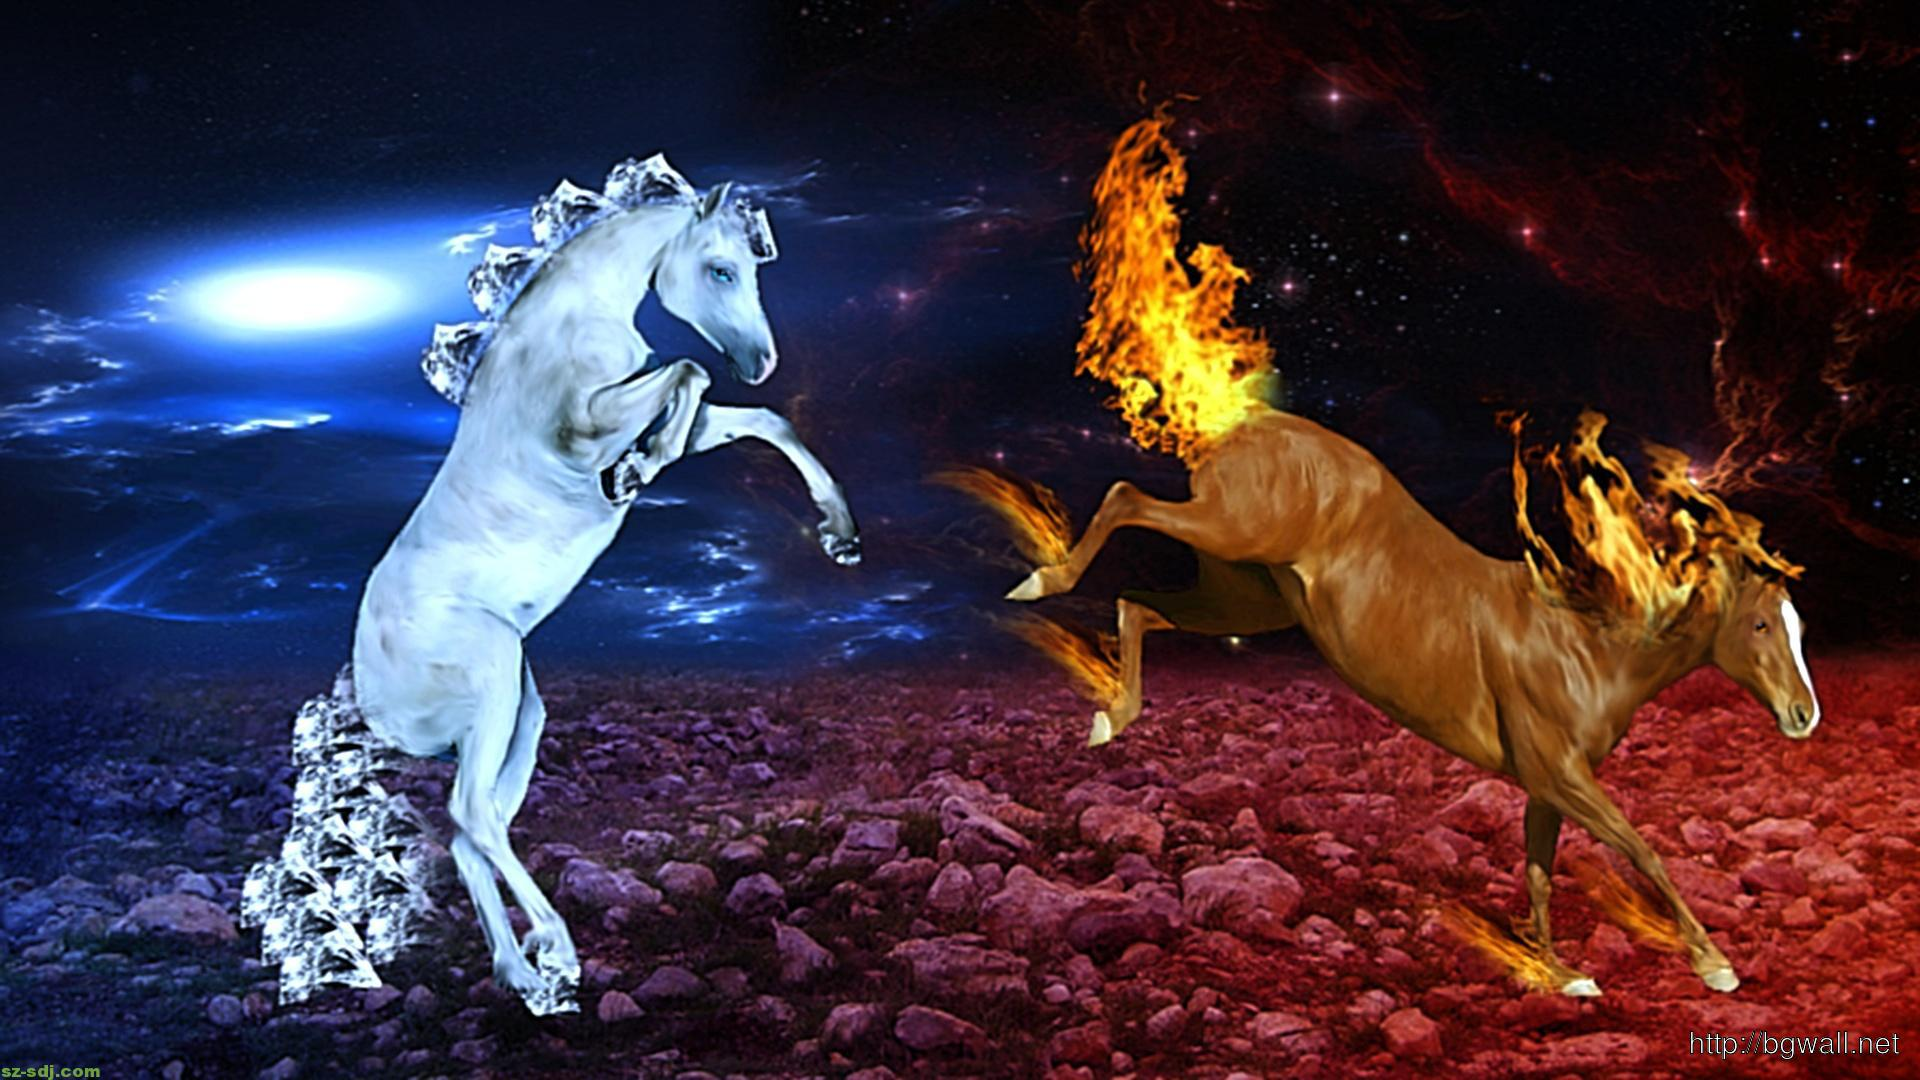 horse-ice-and-fire-cool-image-wallpaper